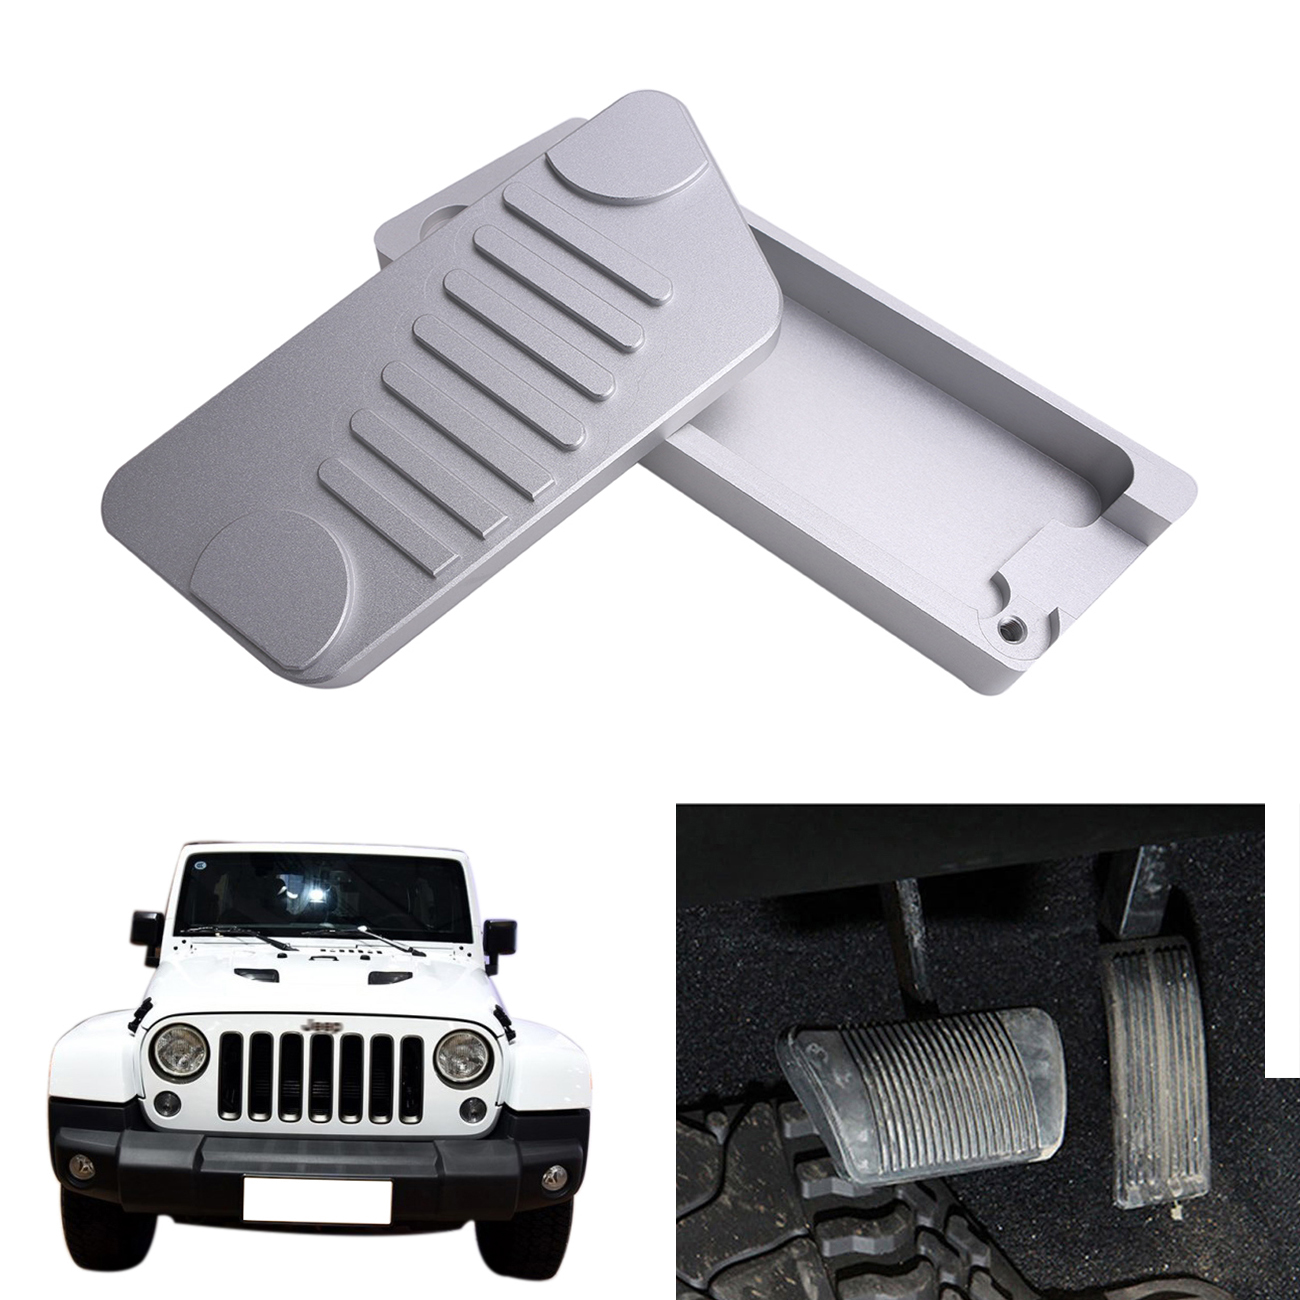 hight resolution of silver aluminum alloy accelerator gas brake pedal kit for jeep wrangler jk rubicon sahara sport 2009 2016 left hand drive ce039 in pedals from automobiles